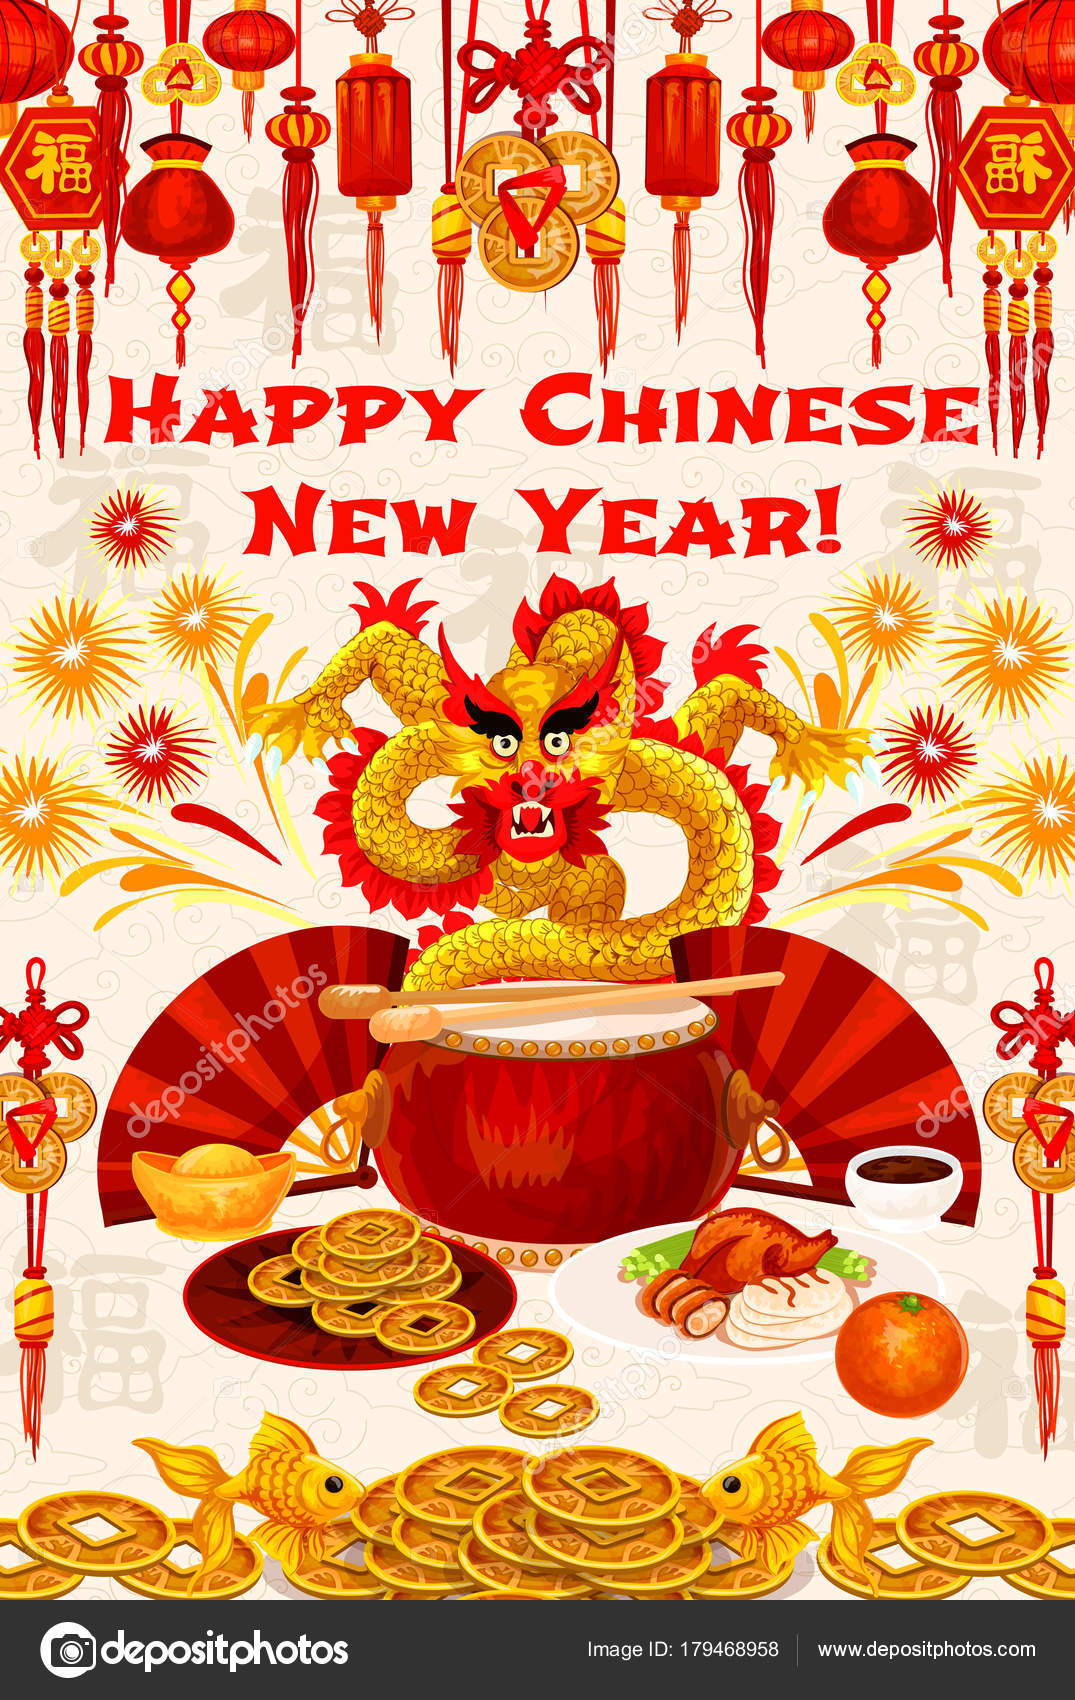 Chinese new year gold symbols vector greeting card stock vector chinese new year greeting wish card of golden dragon and gold chinese symbols of golden coins fish and fireworks vector dragon on drum peking duck and buycottarizona Images